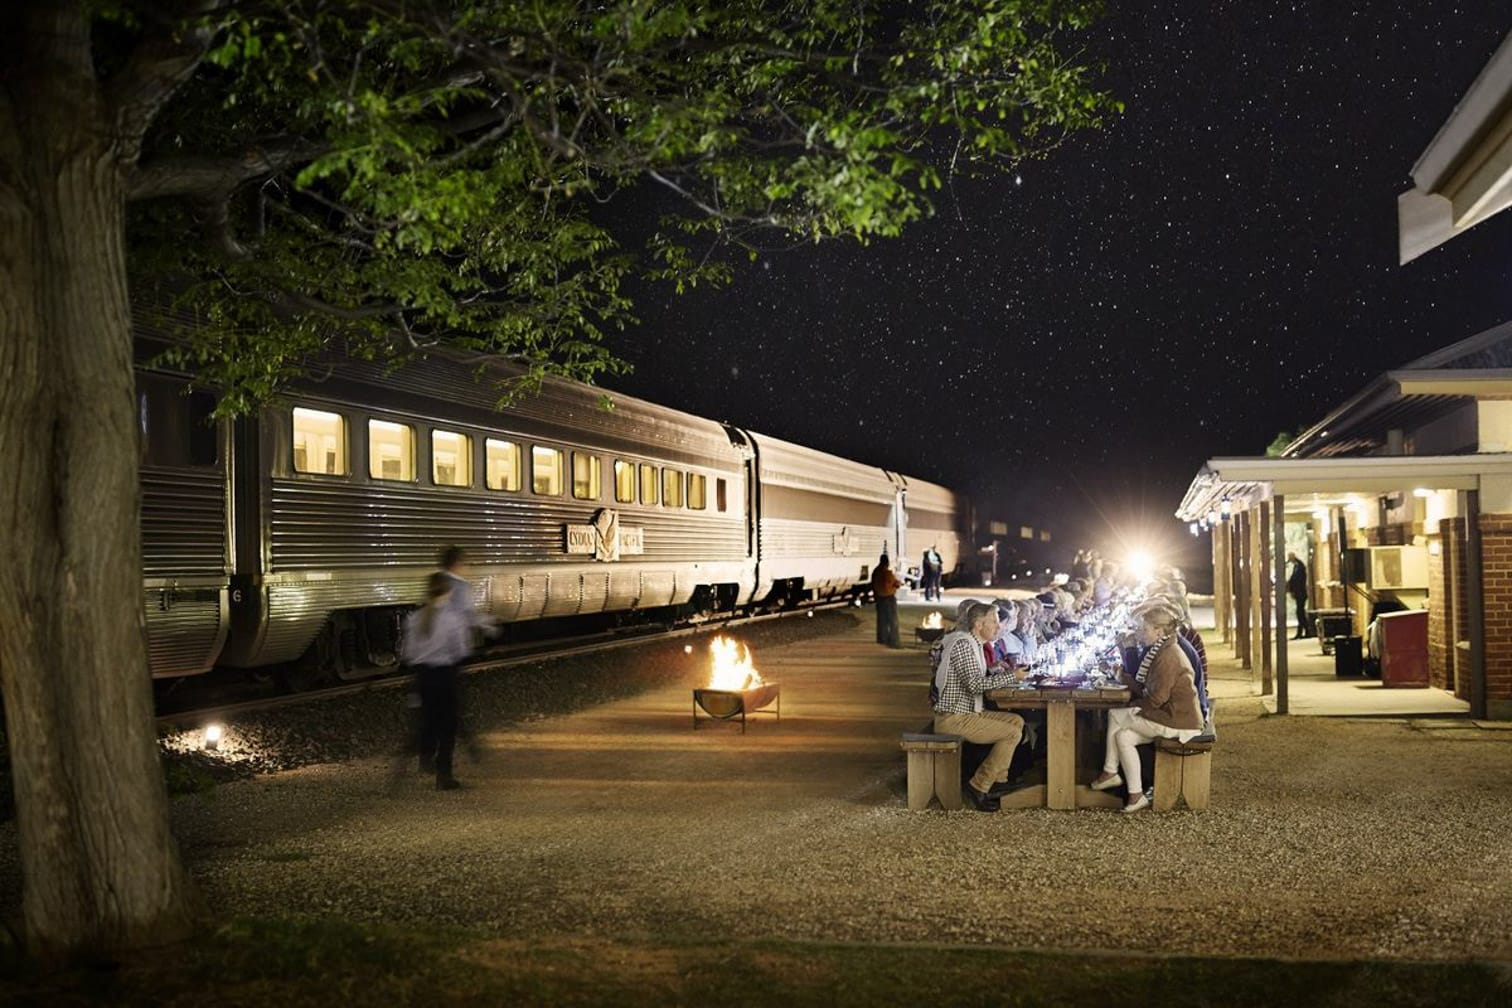 Night in station on the Indian Pacific train